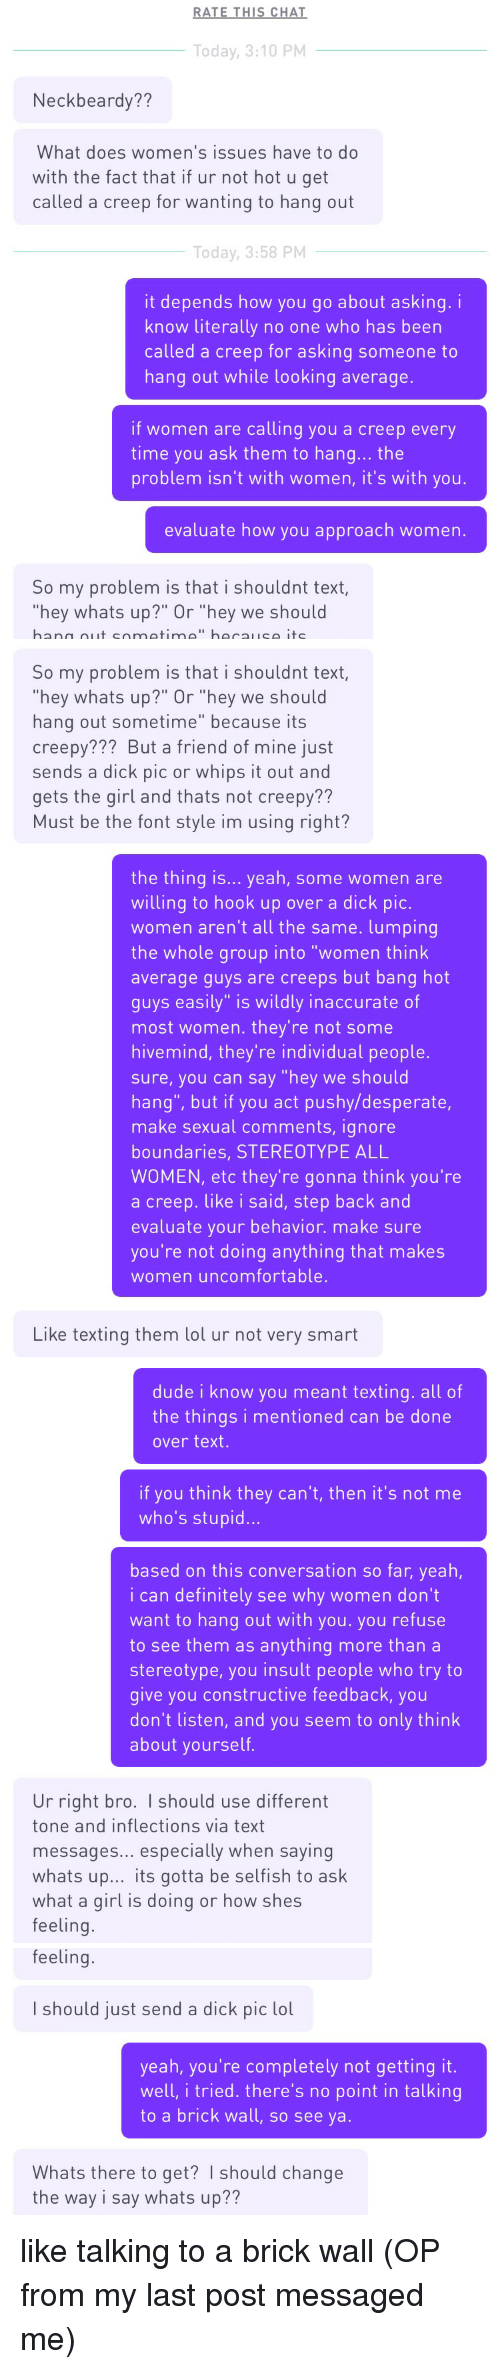 """Neckbeard Things: RATE THIS CHAT  Today, 3:10 PM  Neckbeardy??  What does women's issues have to do  with the fact that if ur not hot u get  called a creep for wanting to hang out  Today, 3:58 PM  it depends how you go about asking. i  know literally no one who has beern  called a creep for asking someone to  hang out while looking average.  if women are calling you a creep every  time you ask them to hang... the  problem isn't with women, it's with you.  evaluate how you approach women.  So my problem is that i shouldnt text  hey whats up?"""" Or """"hey we should   So my problem is that i shouldnt text,  hey whats up?"""" Or """"hey we should  hang out sometime"""" because its  creepy??? But a friend of mine just  sends a dick pic or whips it out and  gets the girl and thats not creepy??  Must be the font style im using right?  the thing is... yeah, some women are  willing to hook up over a dick pic.  women aren't all the same. lumping  the whole group into """"women think  average guys are creeps but bang hot  guys easily"""" is wildly inaccurate of  most women. they're not some  hivemind, they're individual people.  sure, you can say """"hey we should  hang"""", but if you act pushy/desperate,  make sexual comments, ignore  boundaries, STEREOTYPE ALL  WOMEN, etc they're gonna think you're  a creep. like i said, step back and  evaluate your behavior. make sure  you're not doing anything that makes  women uncomfortable.   Like texting them lol ur not very smart  dude i know you meant texting. all of  the things i mentioned can be done  over text.  if you think they can't, then it's not me  who's stupid...  based on this conversation so far, yeah,  i can definitely see why women don't  want to hang out with you. you refuse  to see them as anything more than a  stereotype, you insult people who try to  give you constructive feedback, you  don't listen, and you seem to only think  about yourself.  Ur right bro. I should use different  tone and inflections via text  messages... especially when """